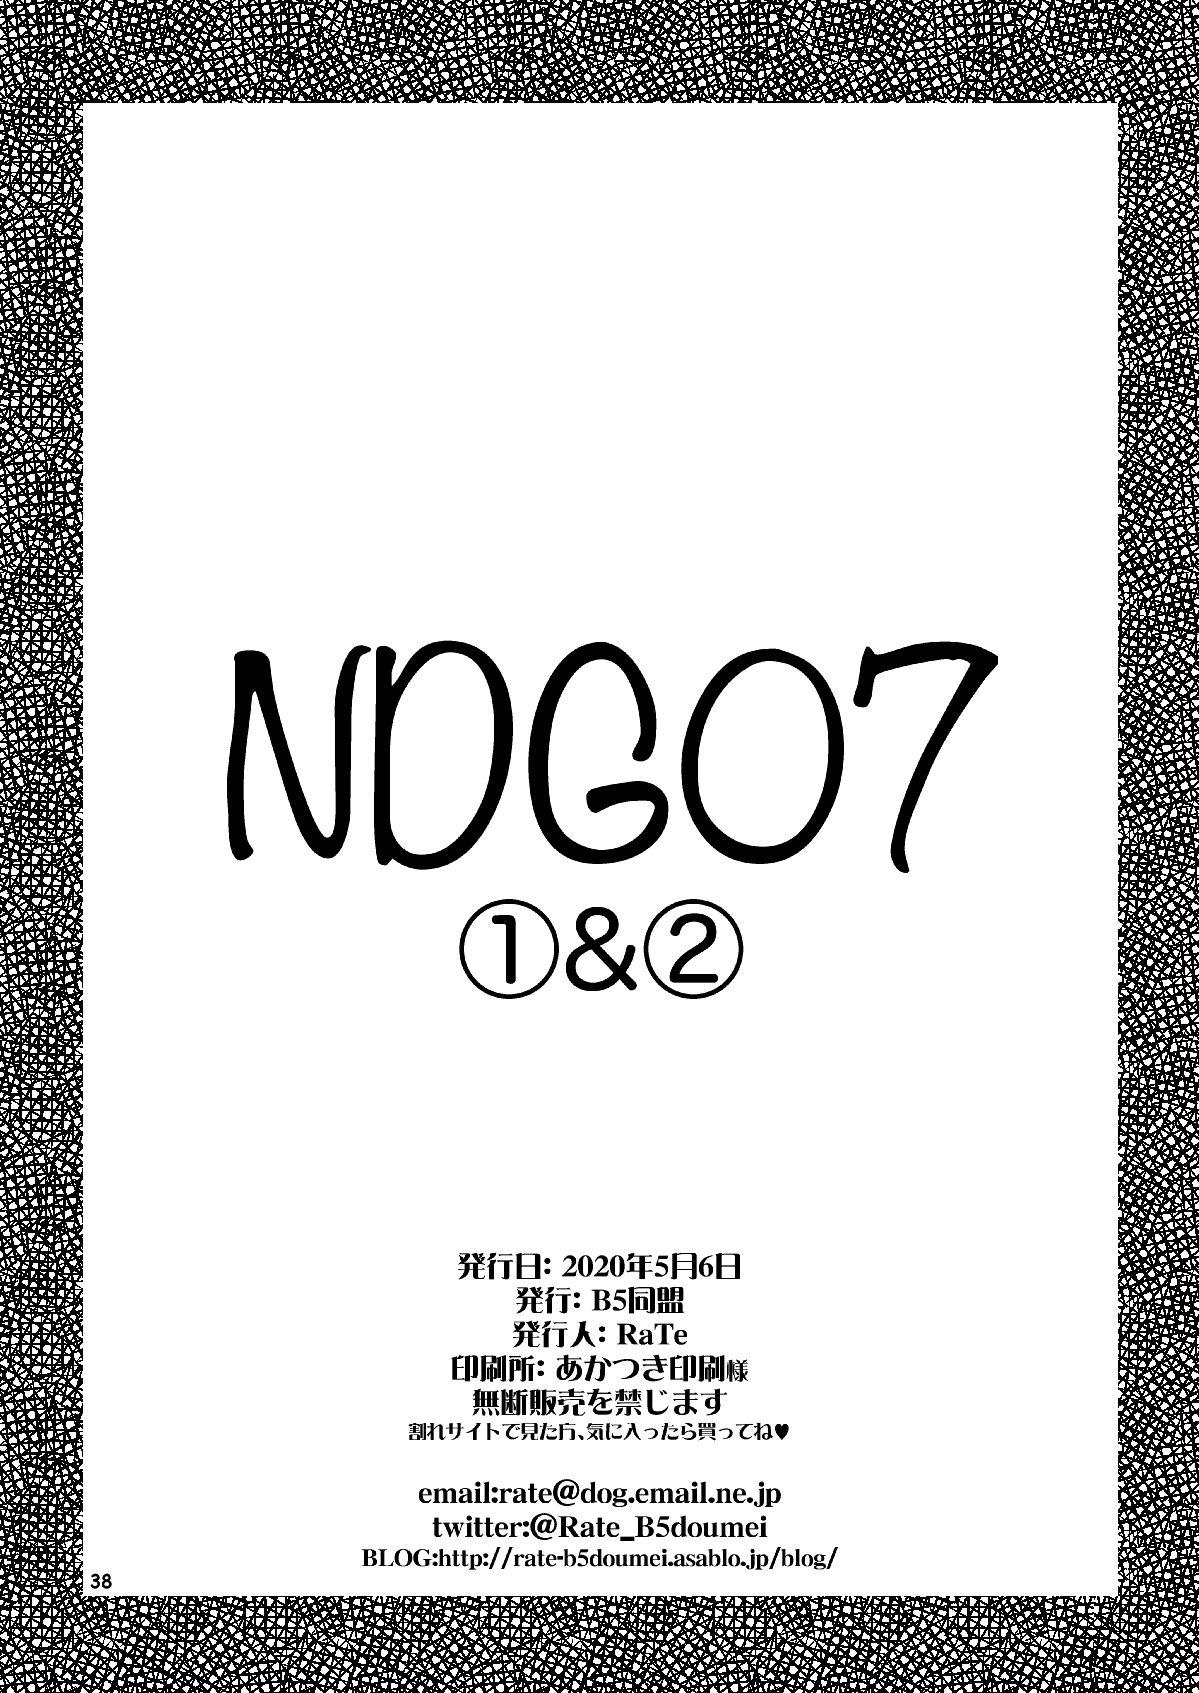 RaTe NDG 07- 1&2 34